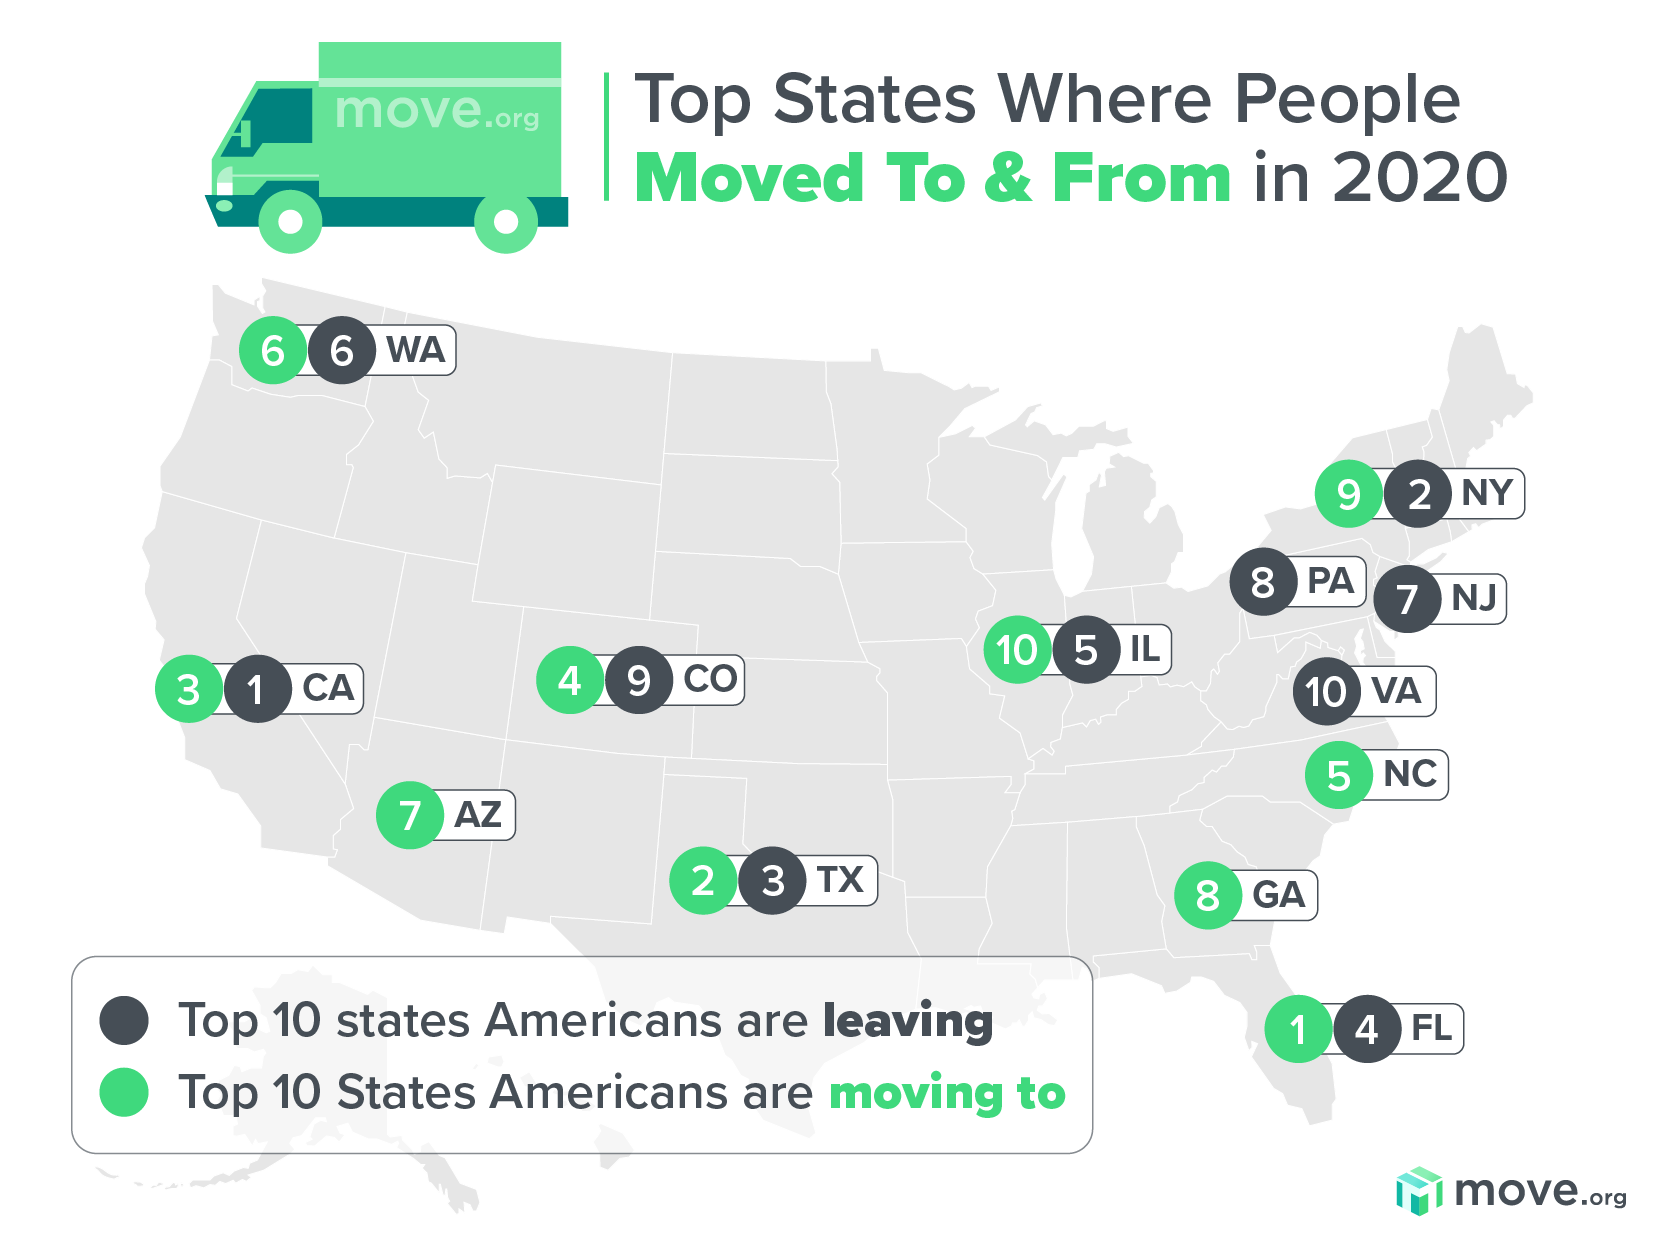 Top States Where People Moved To & From in 2020